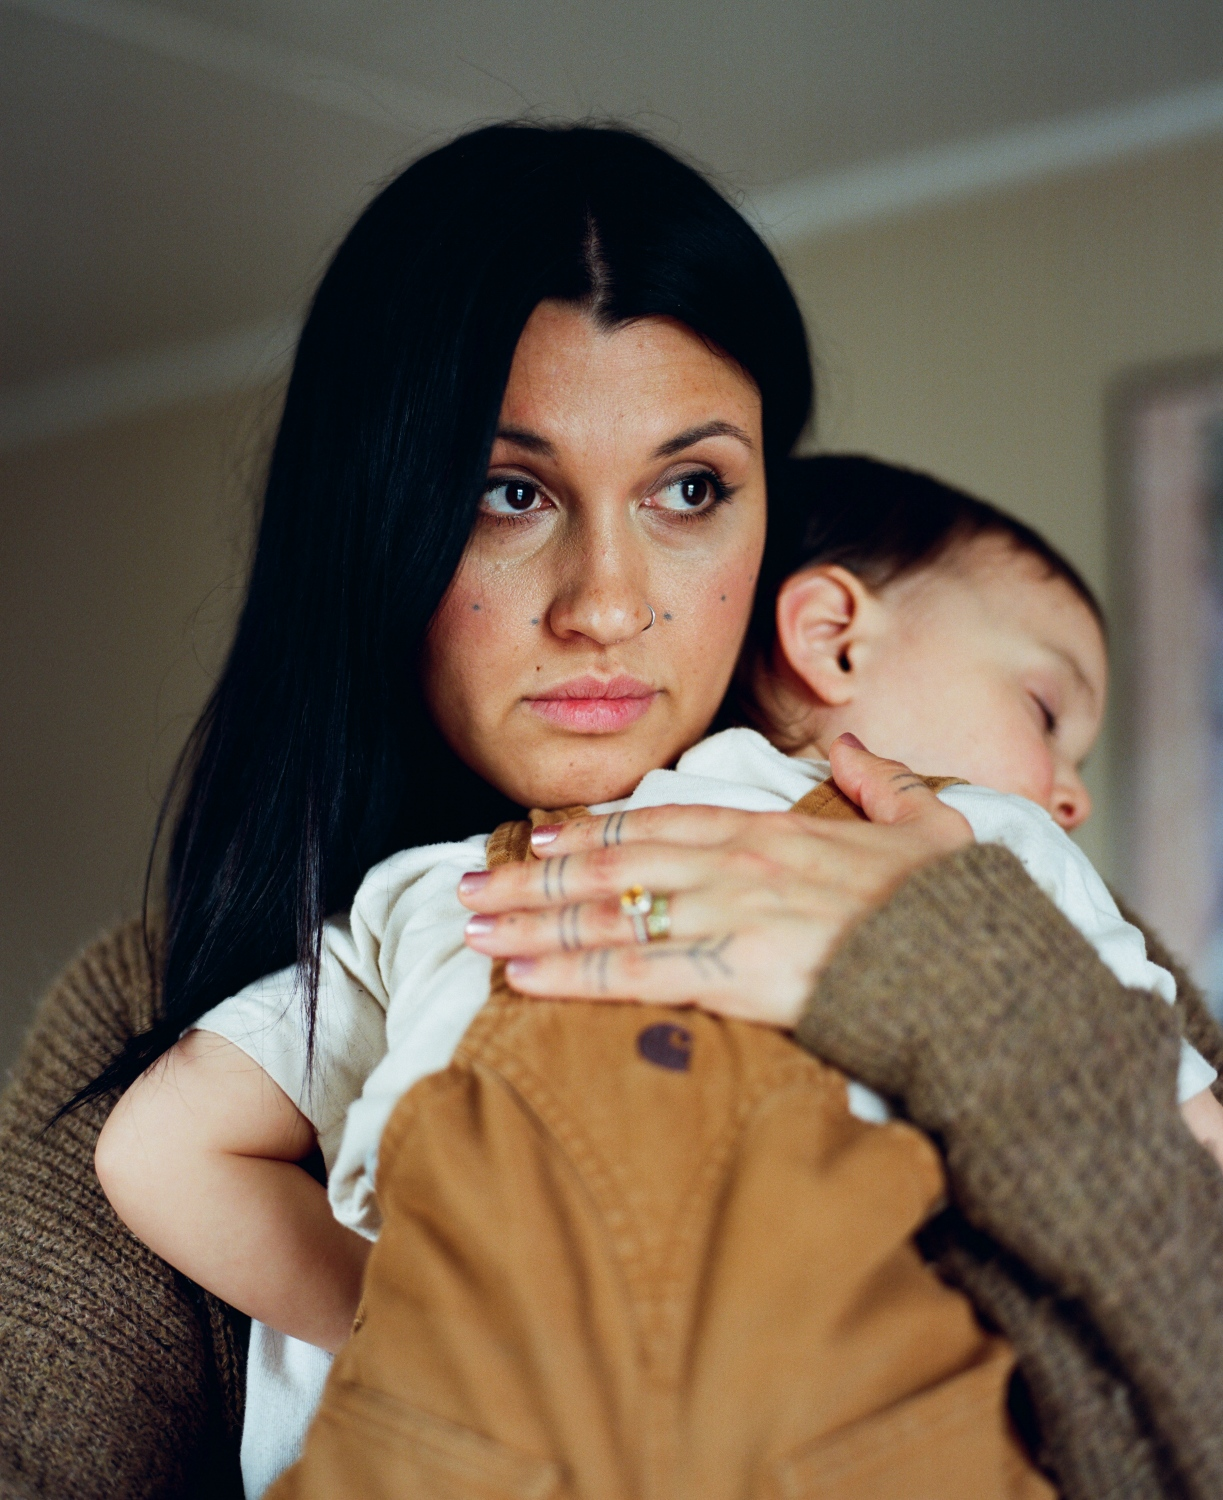 "Keegan Richards holds her daughter, Estelle, 2, in her home in Anchorage, Alaska. Richards is a stay-at-home mom who also designs traditionally-inspired modern atikluks for her business Tundra Mama. Richards, Nordlum's cousin, has had multiple tattoos done by Nordlum, including the Sassuma Ahrna lines on her hands, dots on her cheeks, and most recently, chin lines. When she decided to do the dots on her cheeks even though they are not traditional to Inupiaq culture, she said a lot of it came down to understanding that the tradition itself is now something that's changed because it is a revitalization. ""We now live in a Western world and things have evolved and changed, and while it is a traditional tattoo that is done in a traditional way, I feel that it is modern because I was able to look across the board and pick something that resonated for me and what I identify with and then come up with my own meaning for it. Because [the tattoos] all had different meanings and different families got different designs for different reasons. They all had their own story behind them. And because two generations of women in my family do not have these markings, I feel like we are at a place where you can start that tradition over again. And I can get these dots to represent 10 women in my life that have had an impact on me, past or present, that will continue to impact my journey. And maybe one day, my daughter will have a tribe of her own of amazing women and want to honor them in some way, and maybe it will look like this and maybe it won't, but it opens the door for her to be able to do that."""